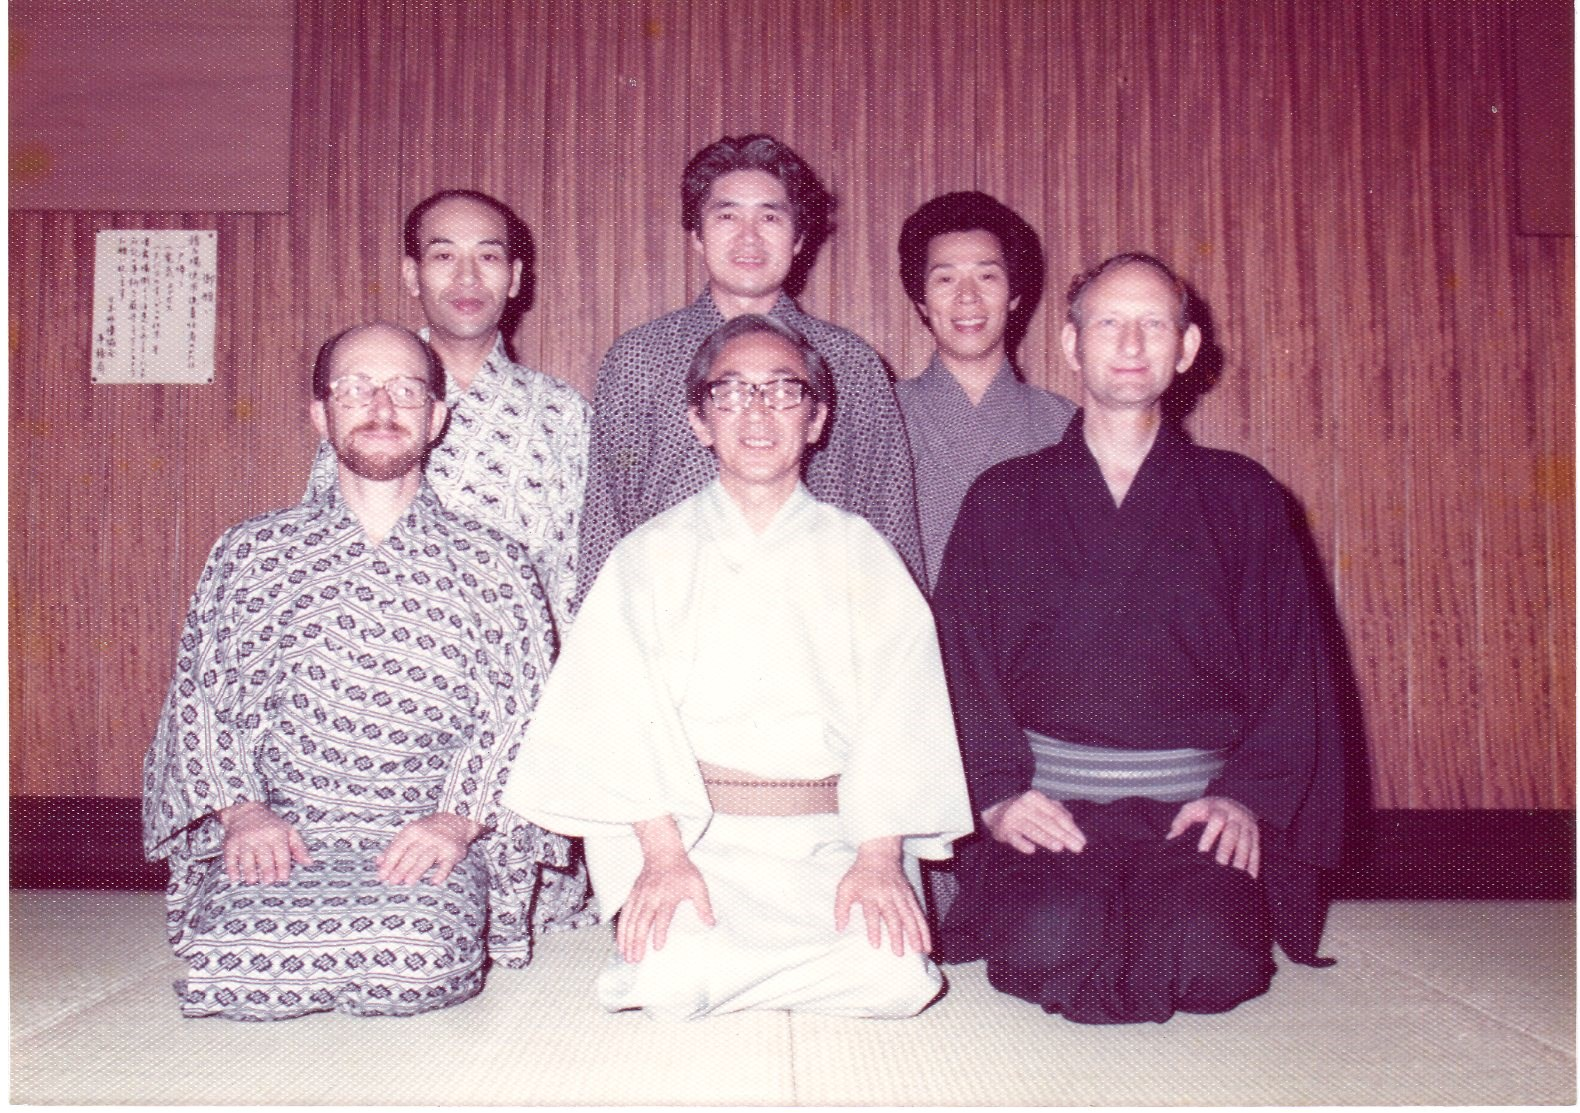 Matagoro sensei and his students, including James Brandon & Leonard Pronko in front row.